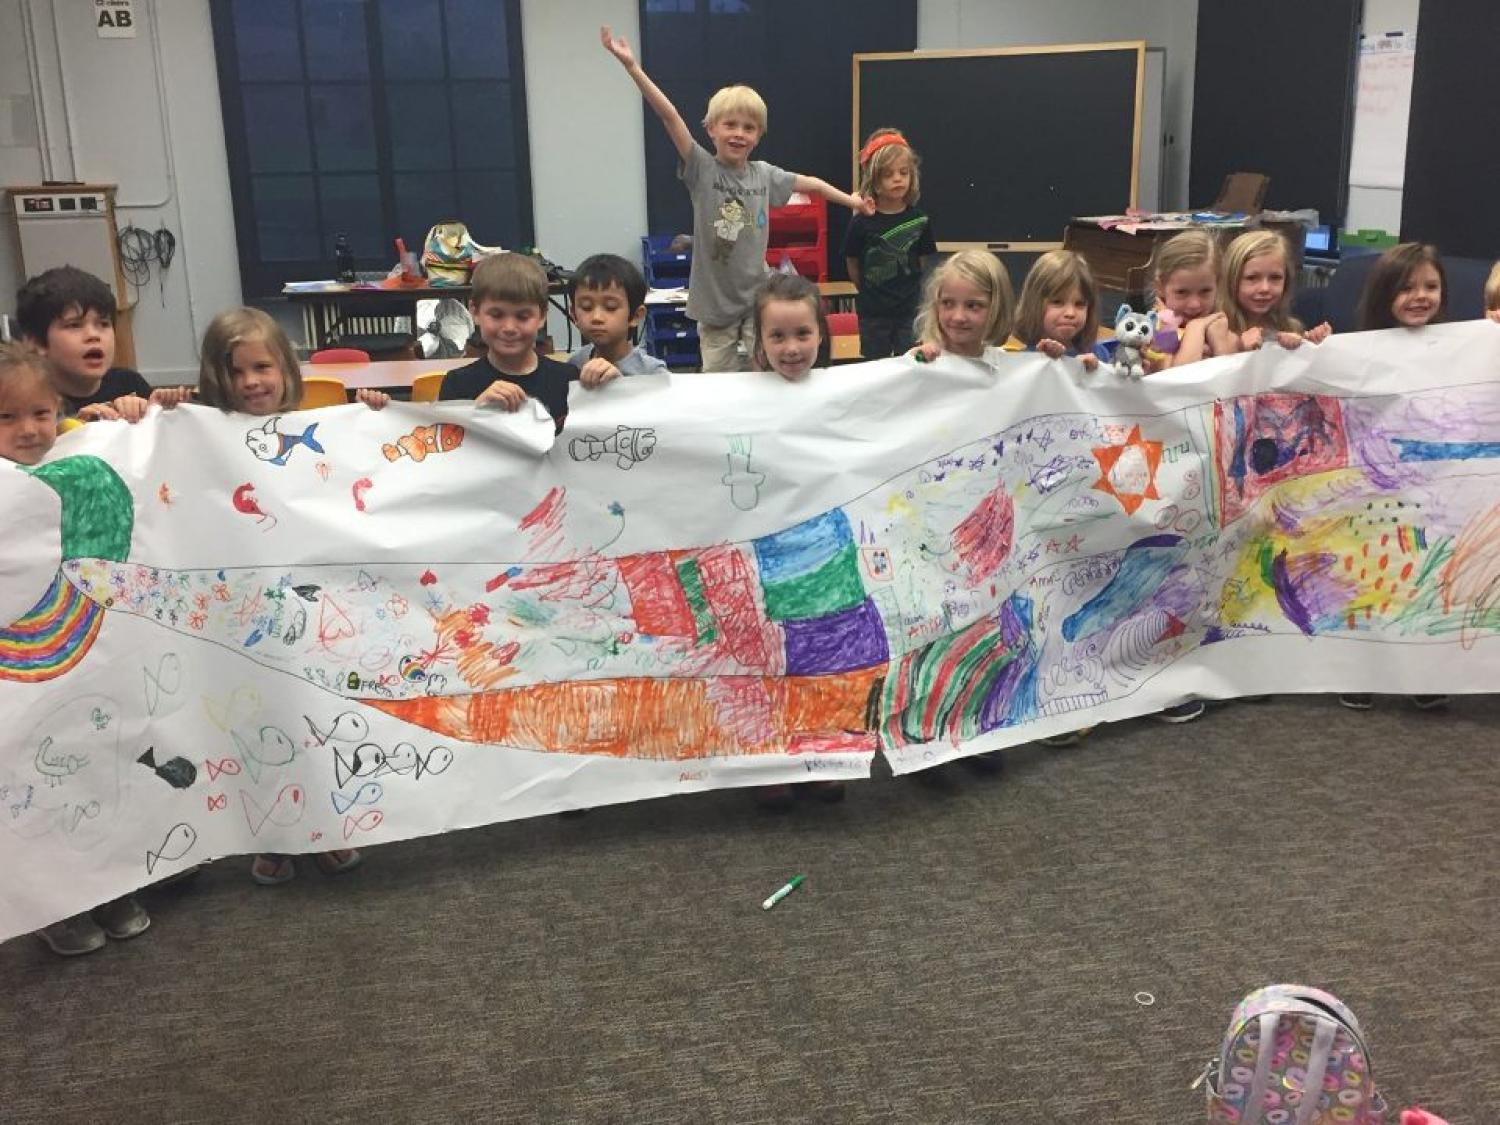 kids holding up their rainbow whale creation